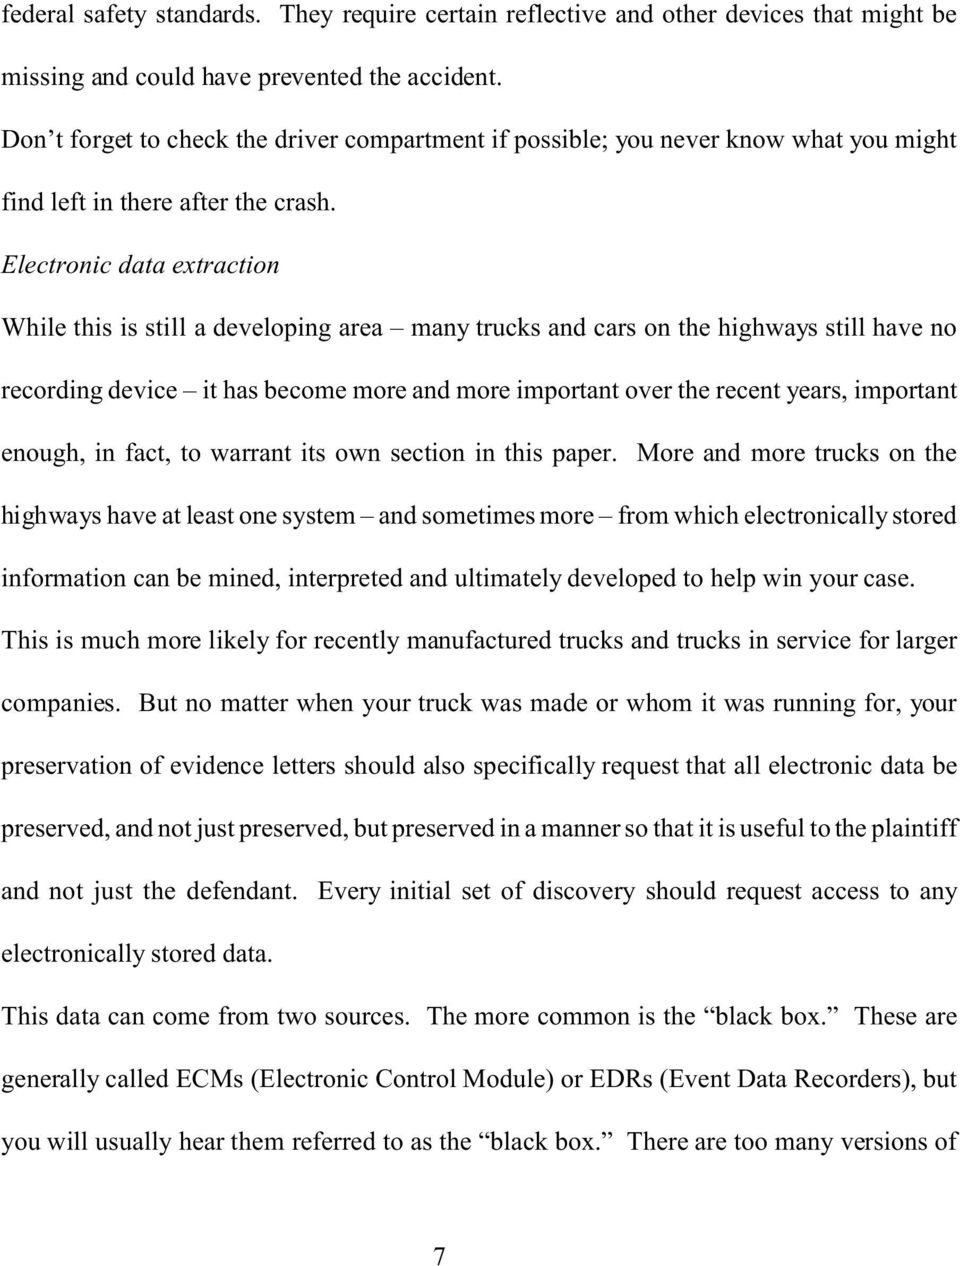 Electronic data extraction While this is still a developing area many trucks and cars on the highways still have no recording device it has become more and more important over the recent years,